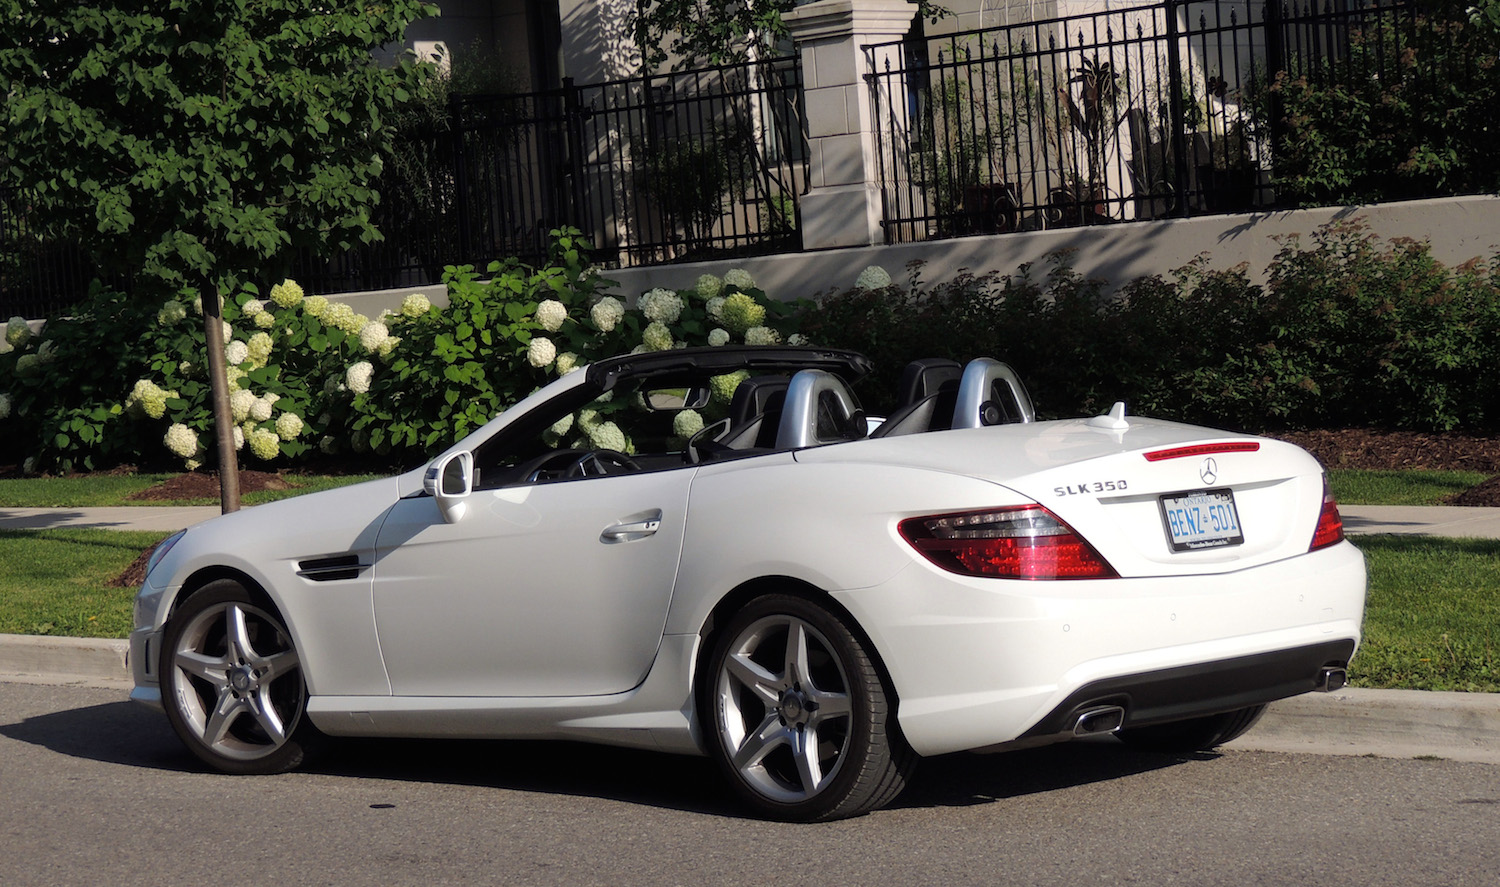 2014 mercedes benz slk 350 roadster and e 350 cabriolet review. Black Bedroom Furniture Sets. Home Design Ideas